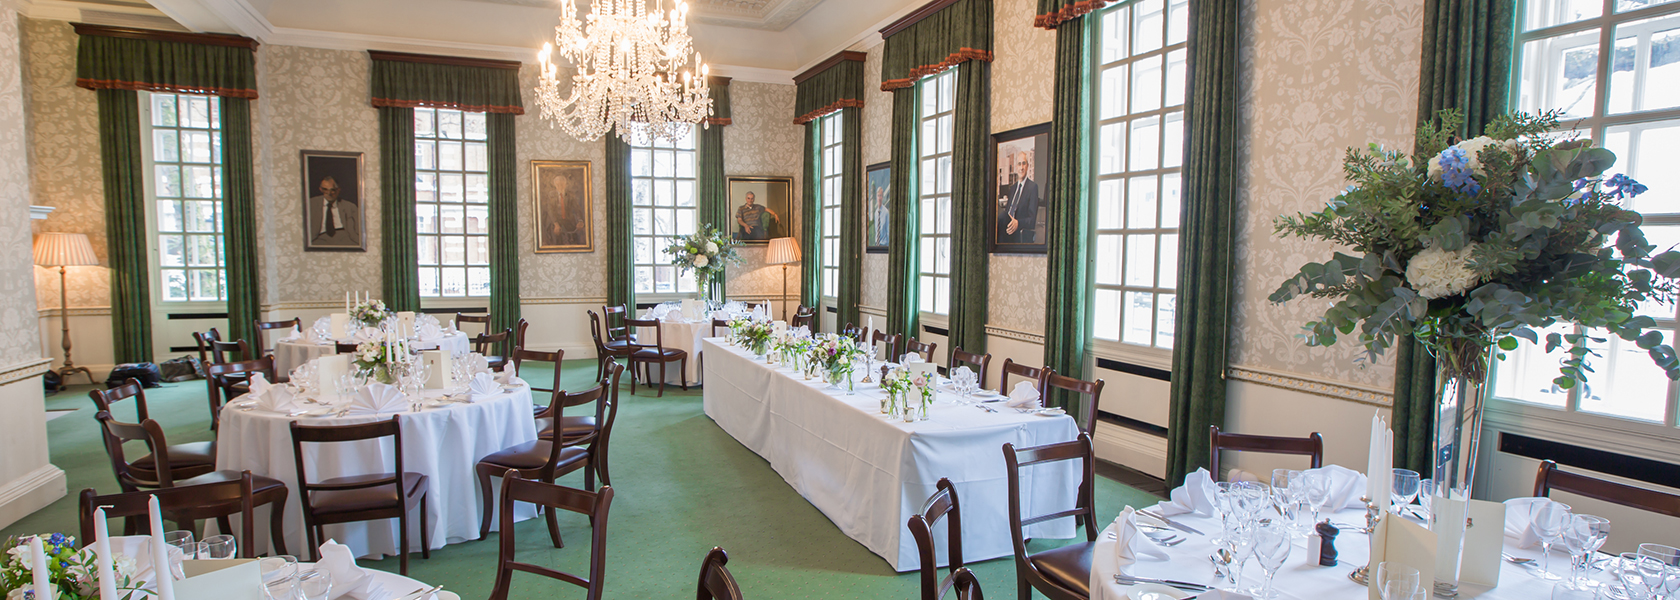 Wedding breakfast in the Council Room at 170 Queen's Gate in South Kensington